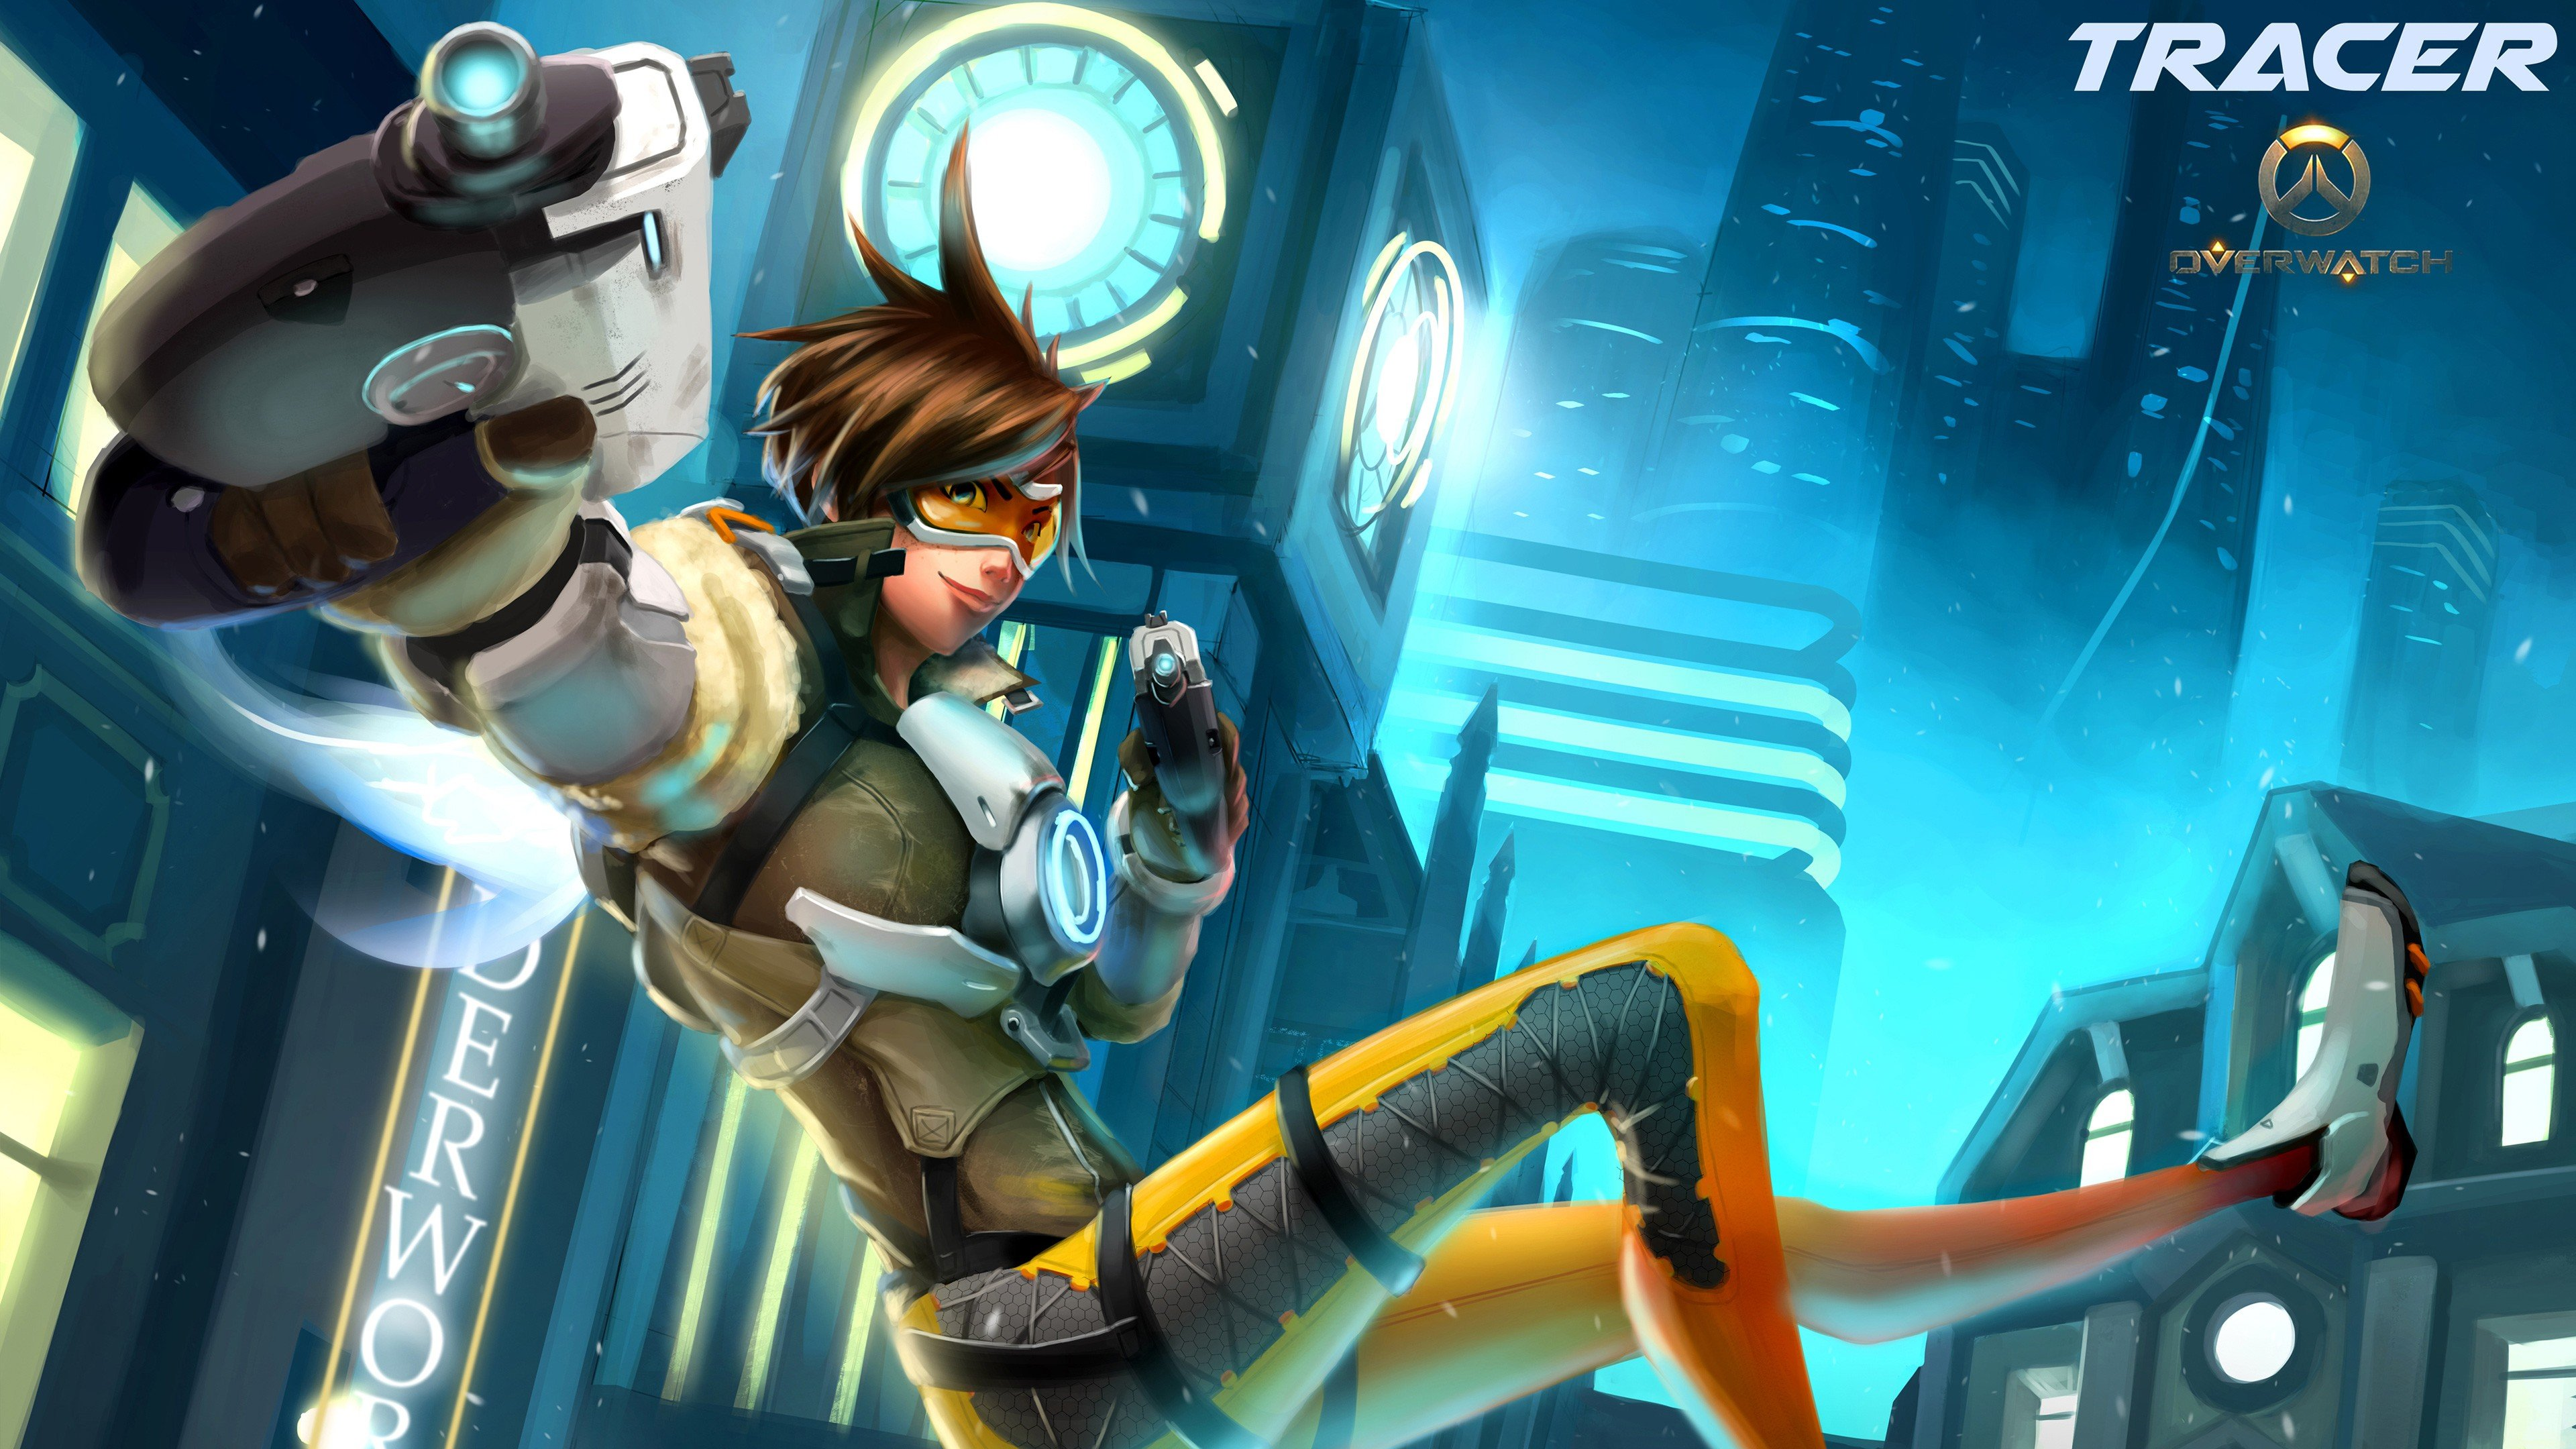 video games, Tracer (Overwatch), Overwatch HD Wallpapers ...